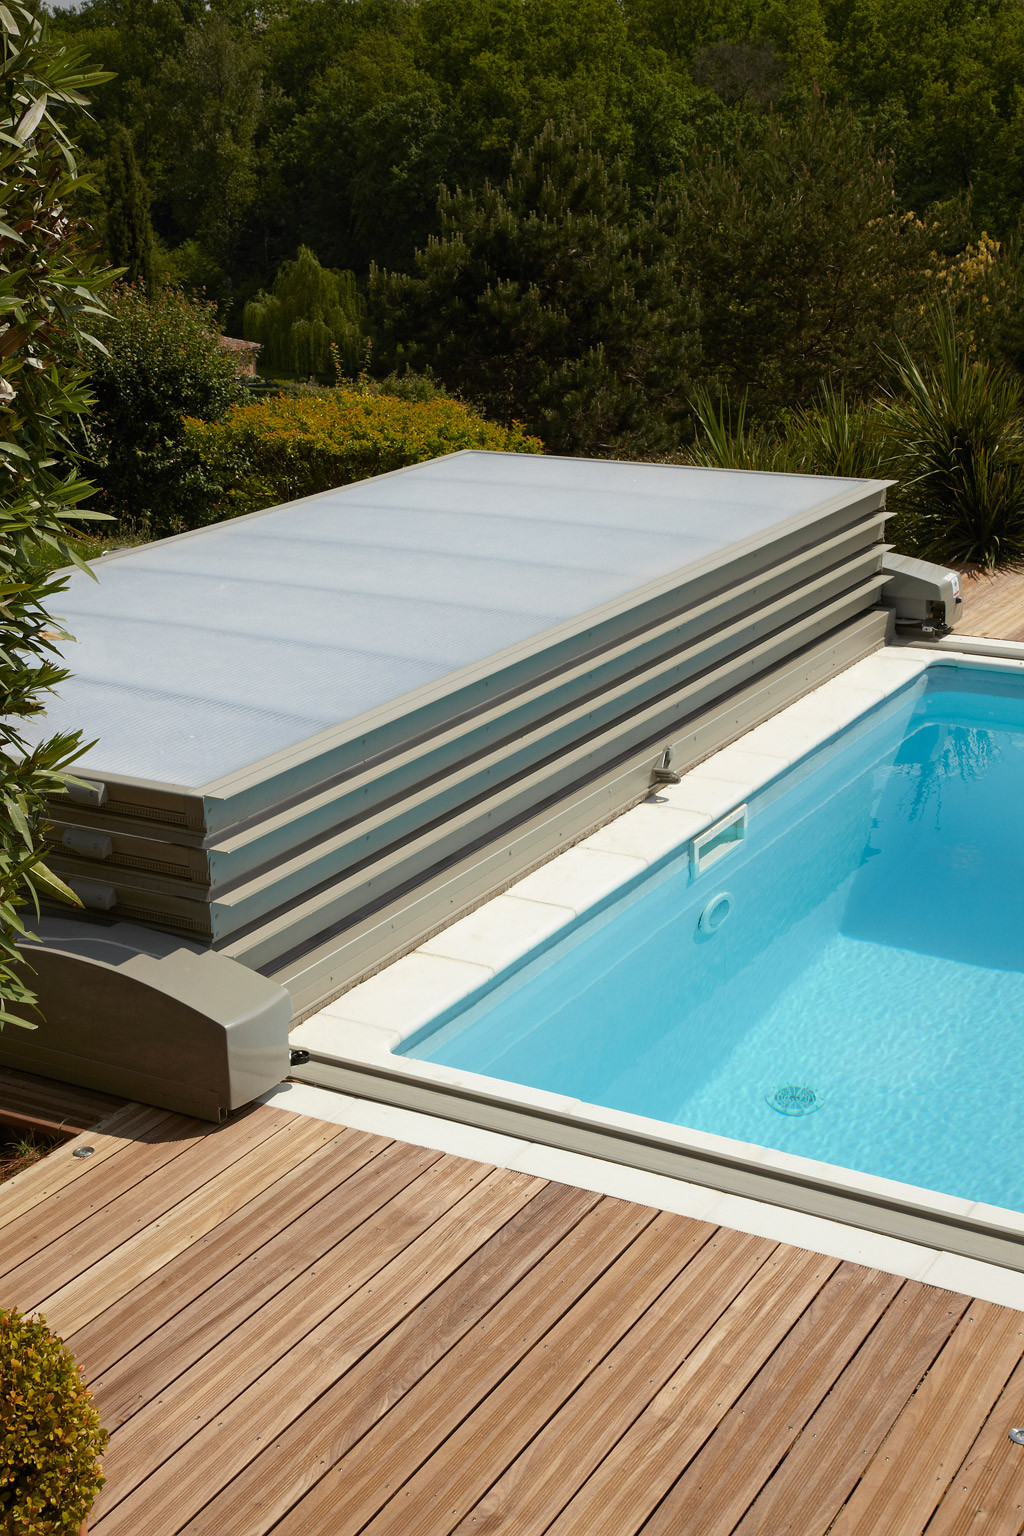 Couverture Piscine Rigide Abri Piscine Rigide